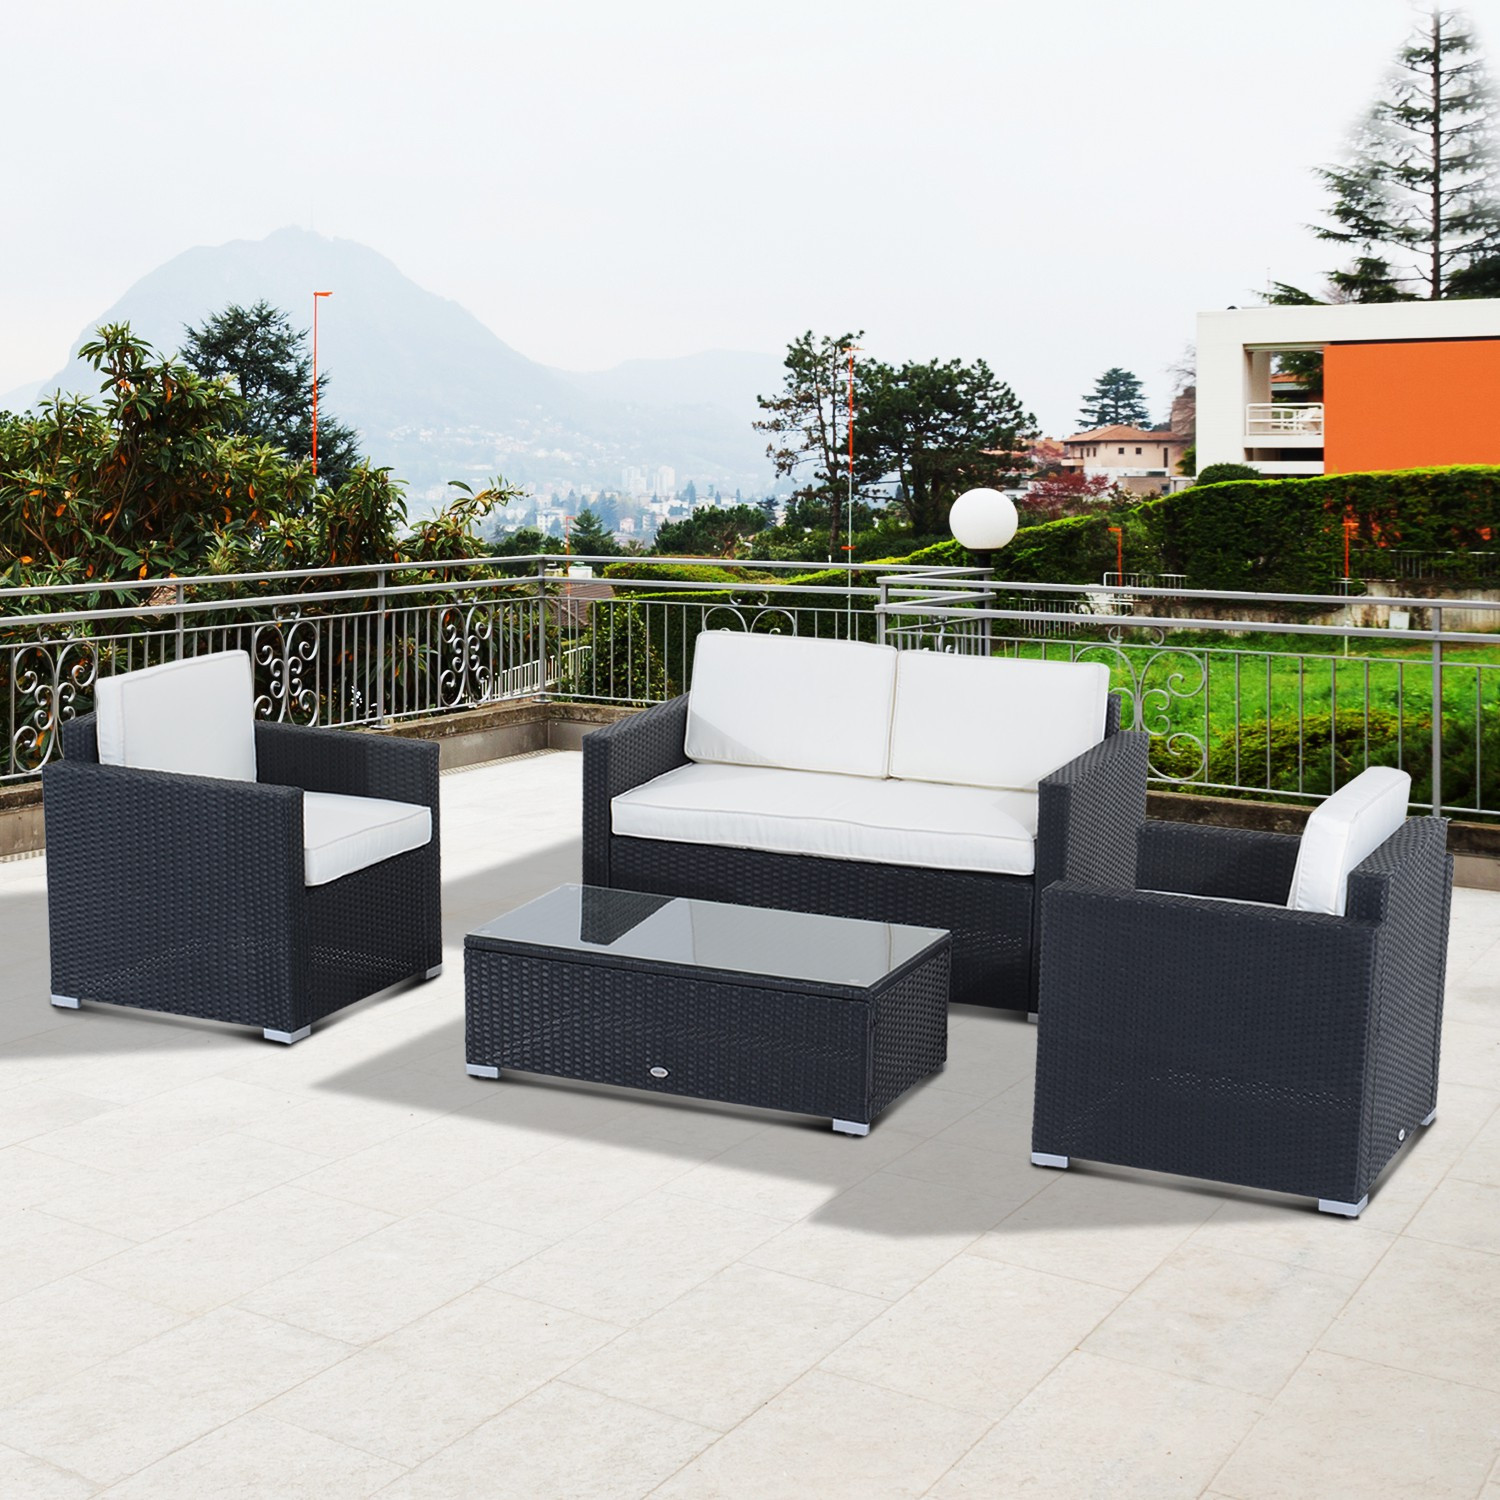 Best ideas about Outsunny Patio Furniture . Save or Pin Outsunny 4 Piece Cushioned Outdoor Rattan Wicker Sofa Set Now.